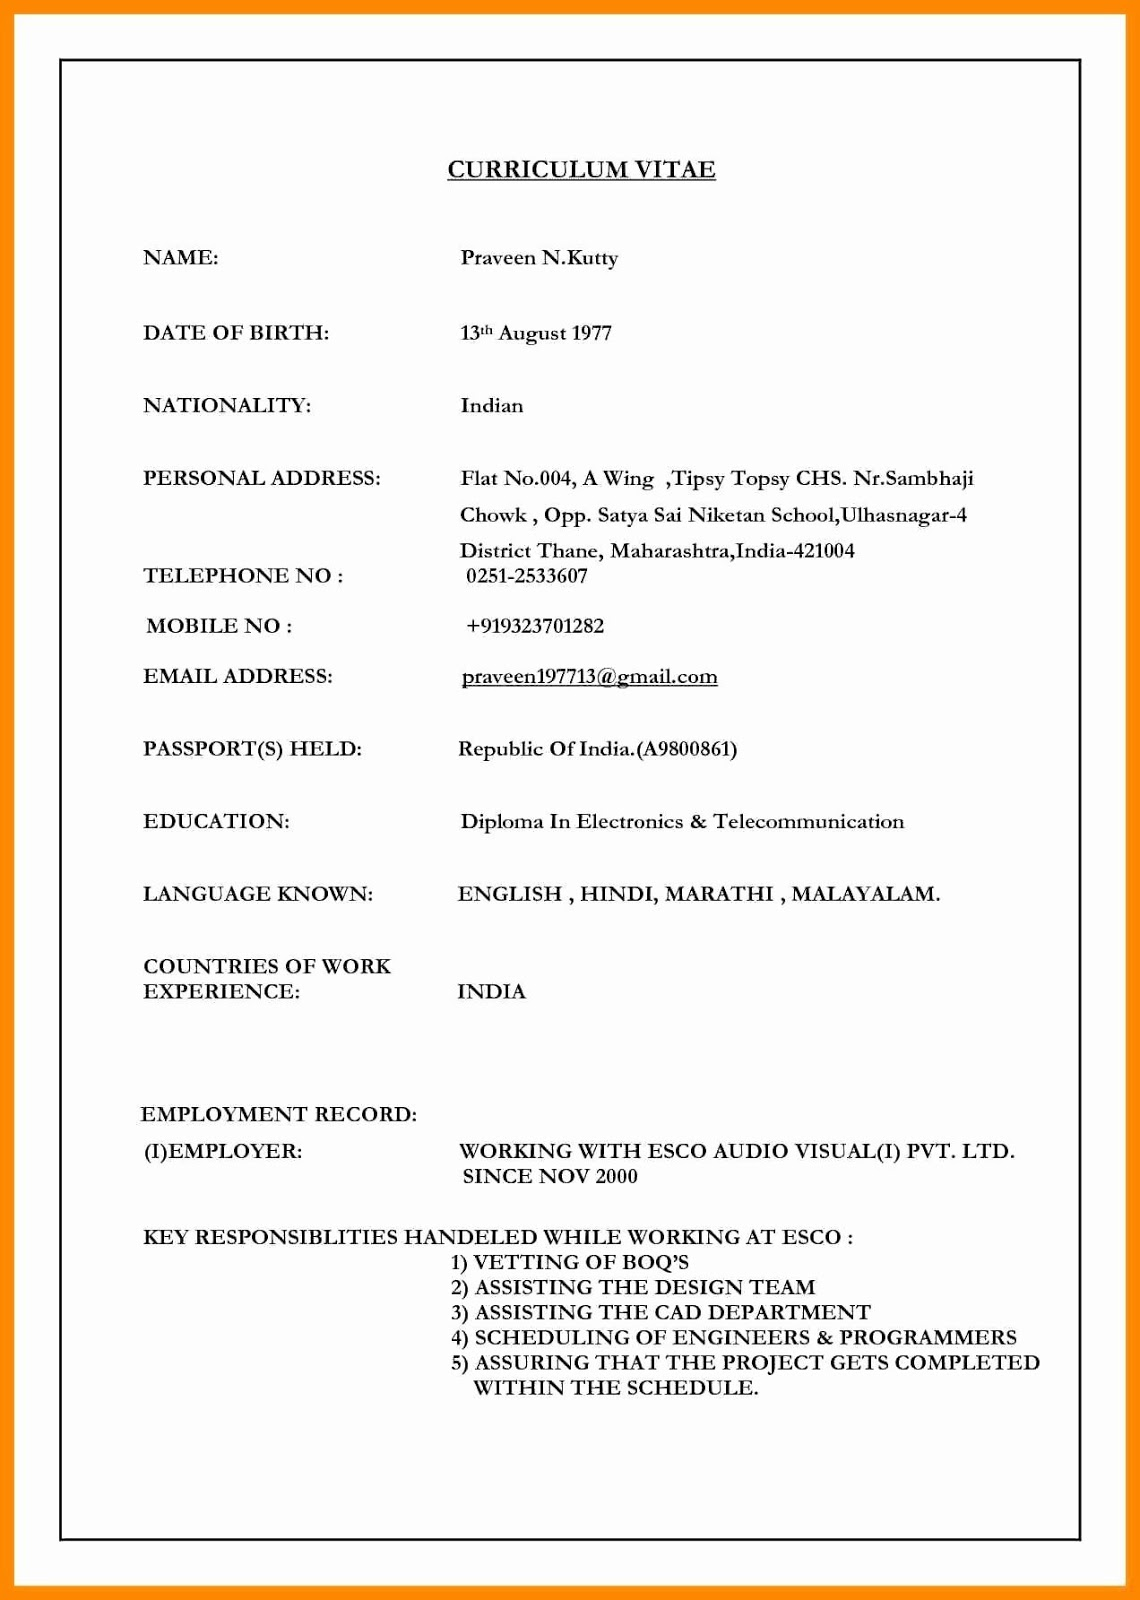 marriage biodata word format doc marriage biodata word format free download doc marriage biodata word format pdf marriage biodata word format free download pdf marriage biodata word format for boy marriage biodata word format in marathi